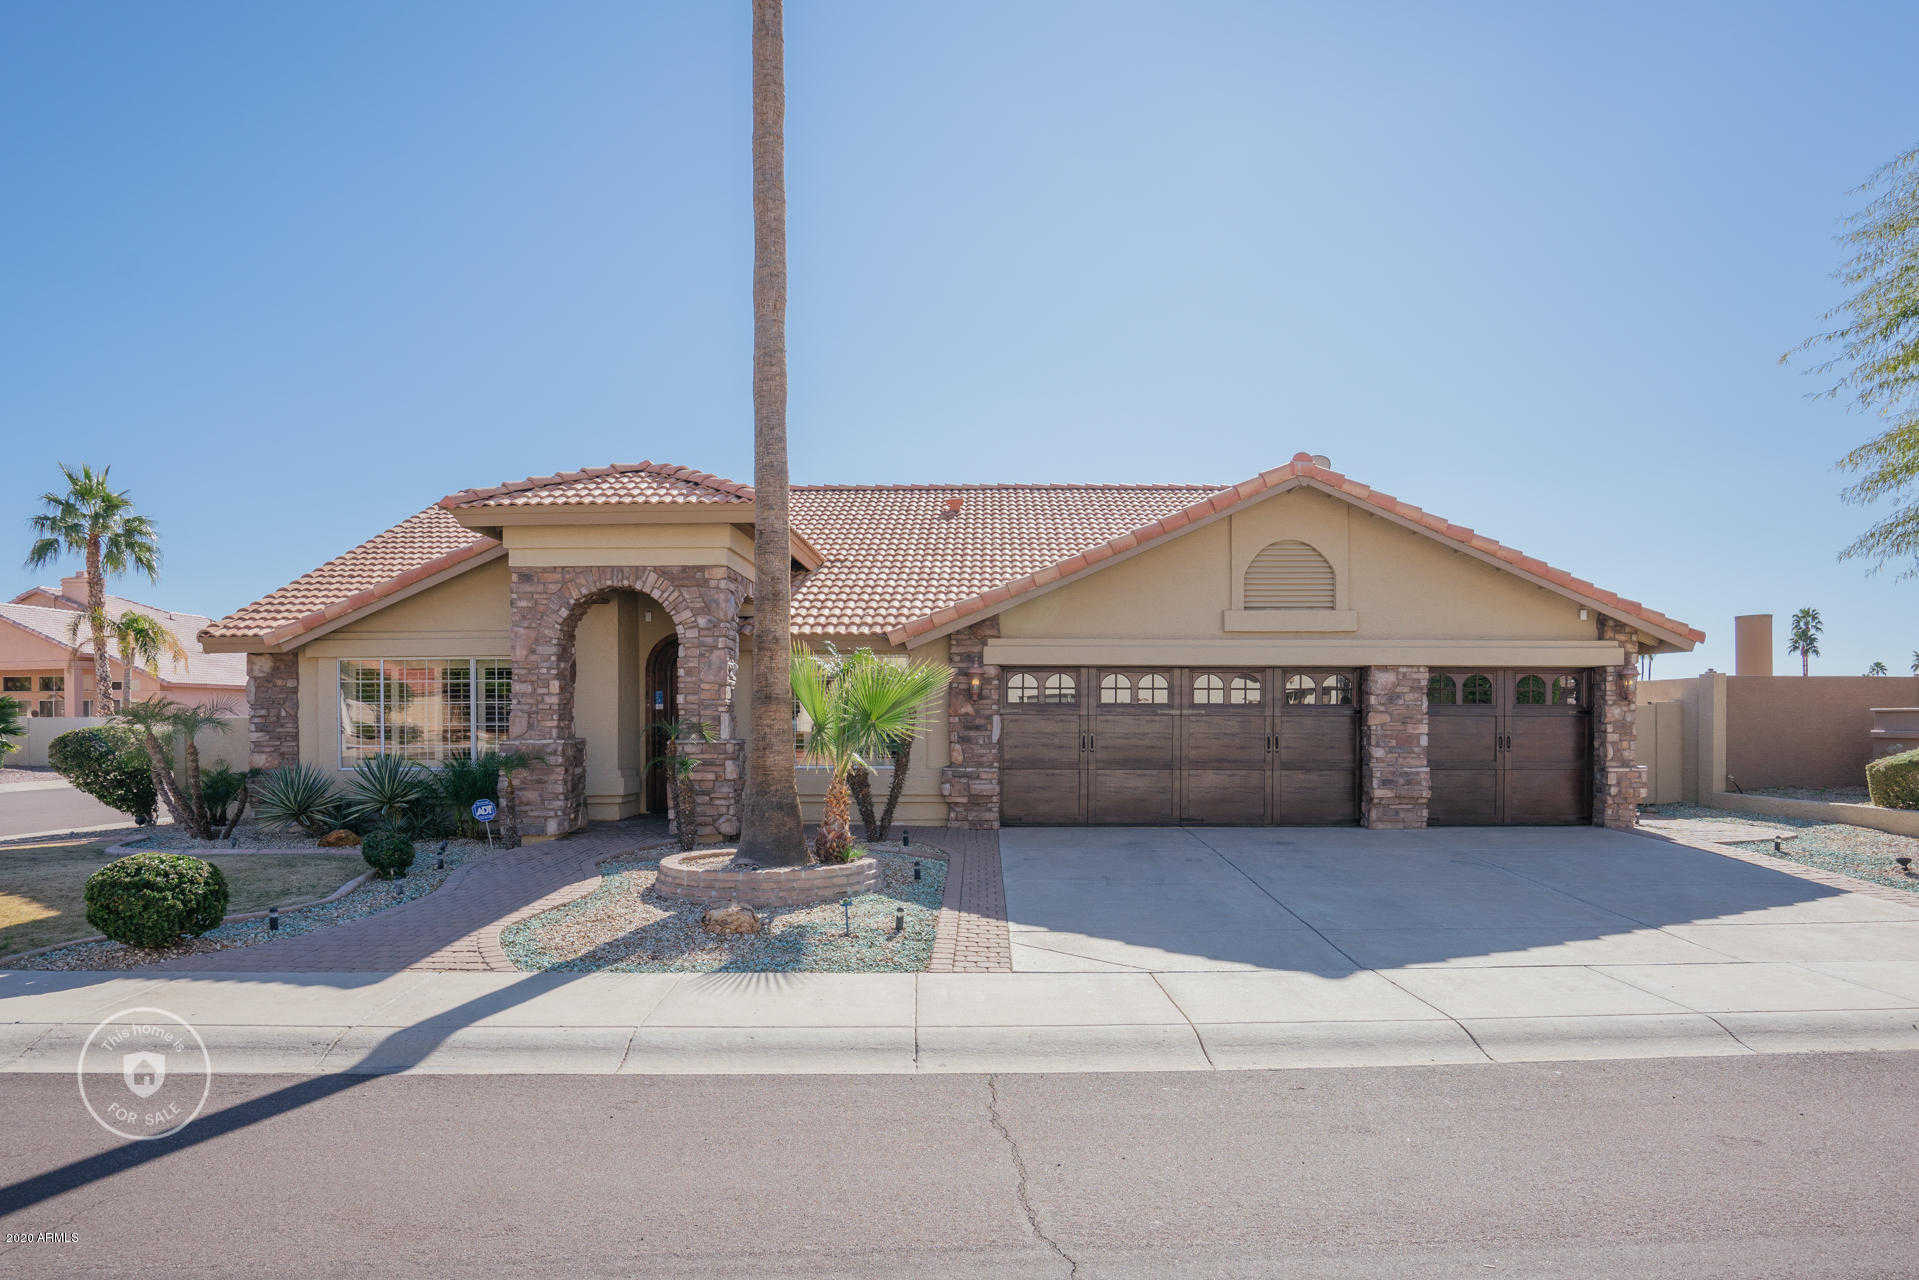 $450,000 - 4Br/2Ba - Home for Sale in Arrowhead Lakes Unit 5a, Glendale